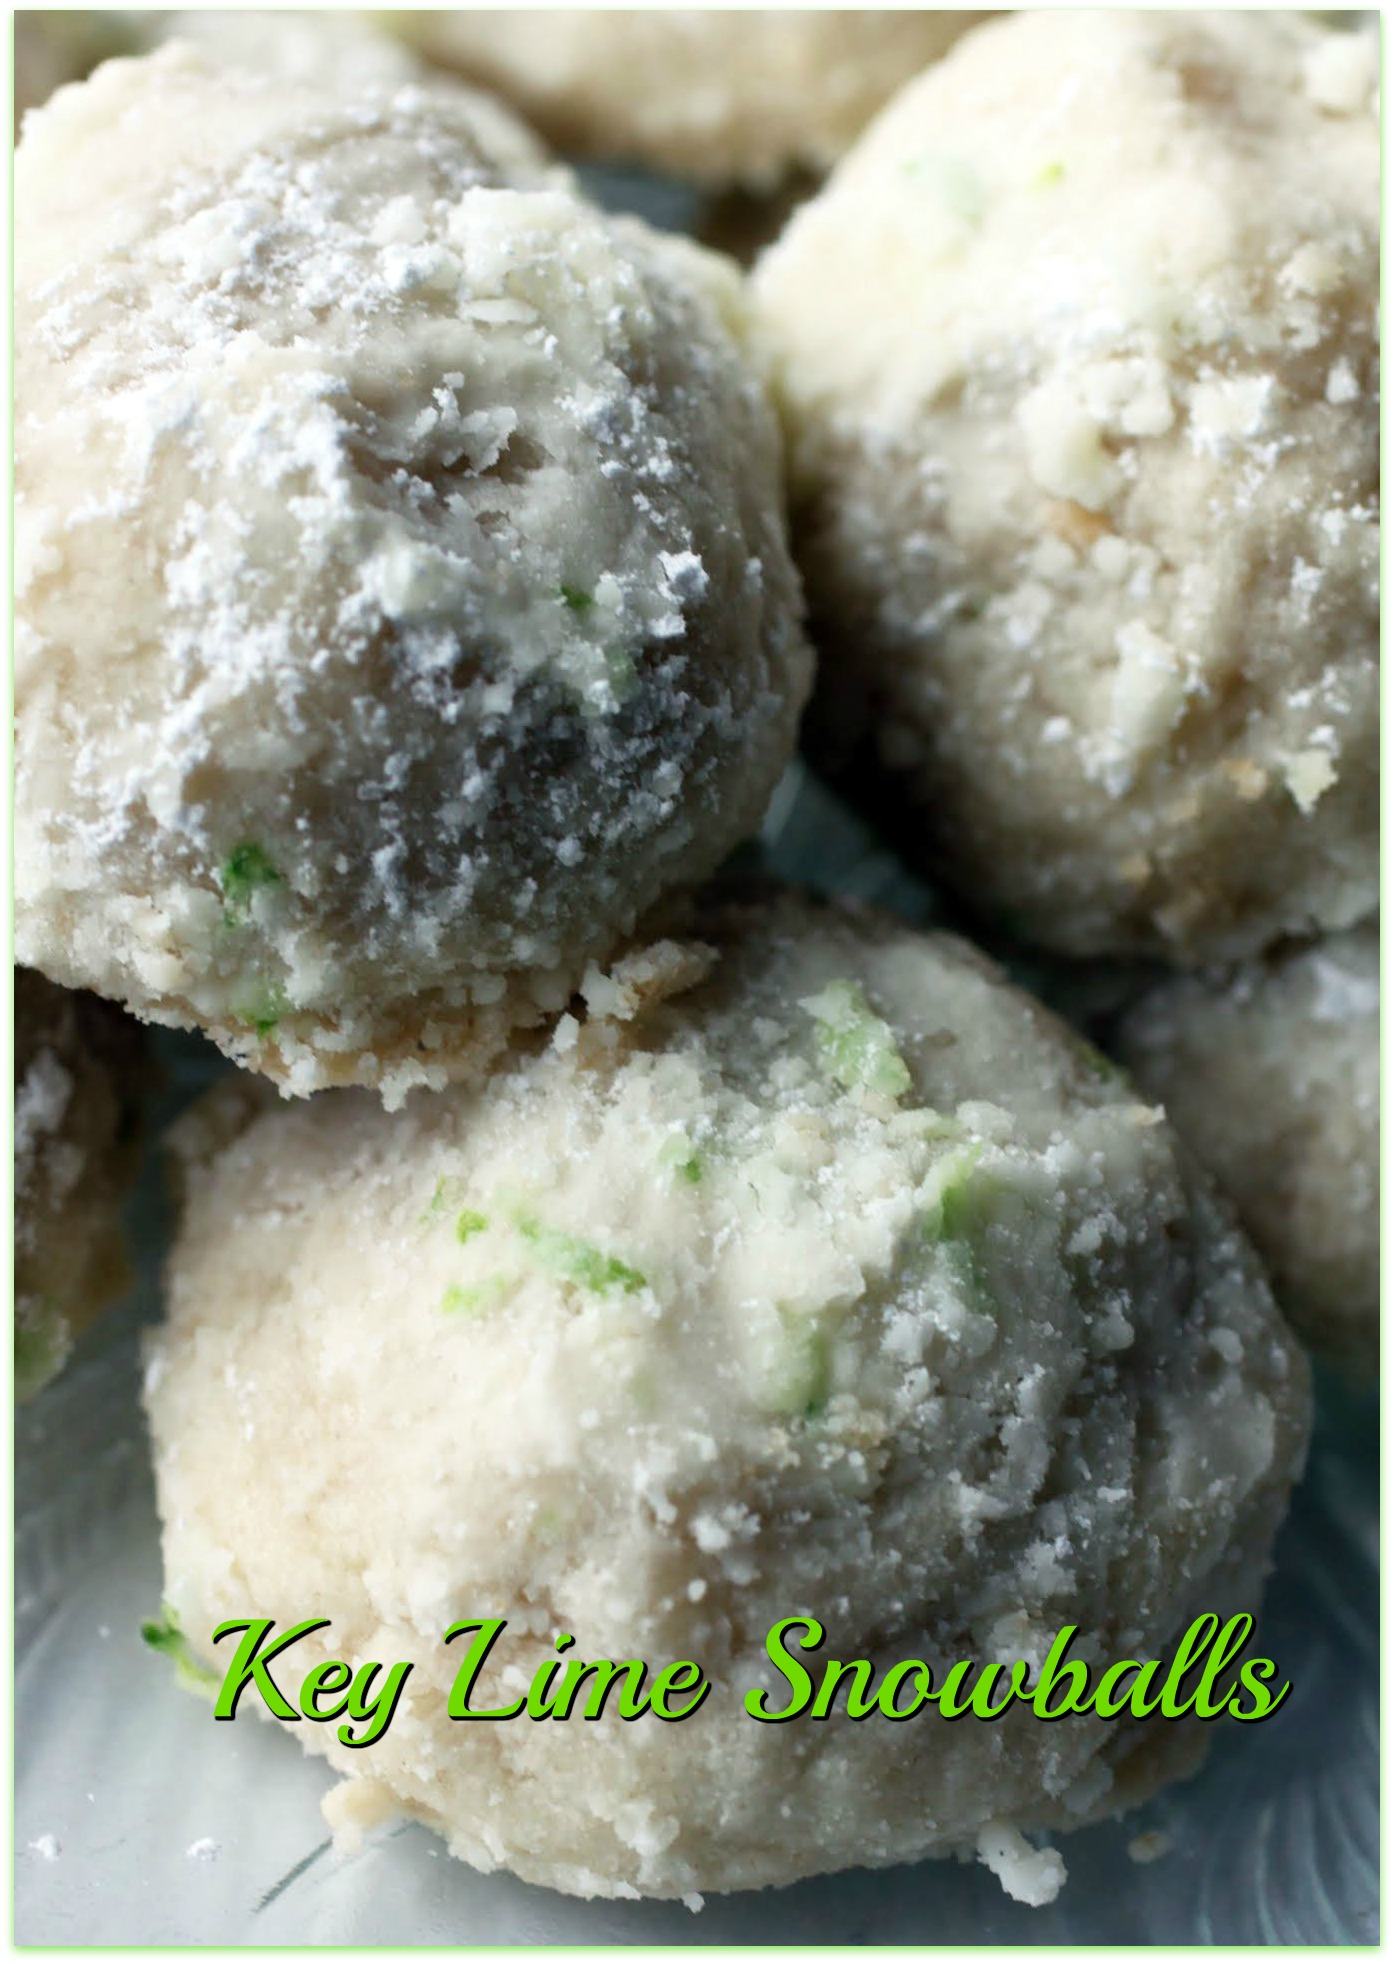 Key Lime Snowballs